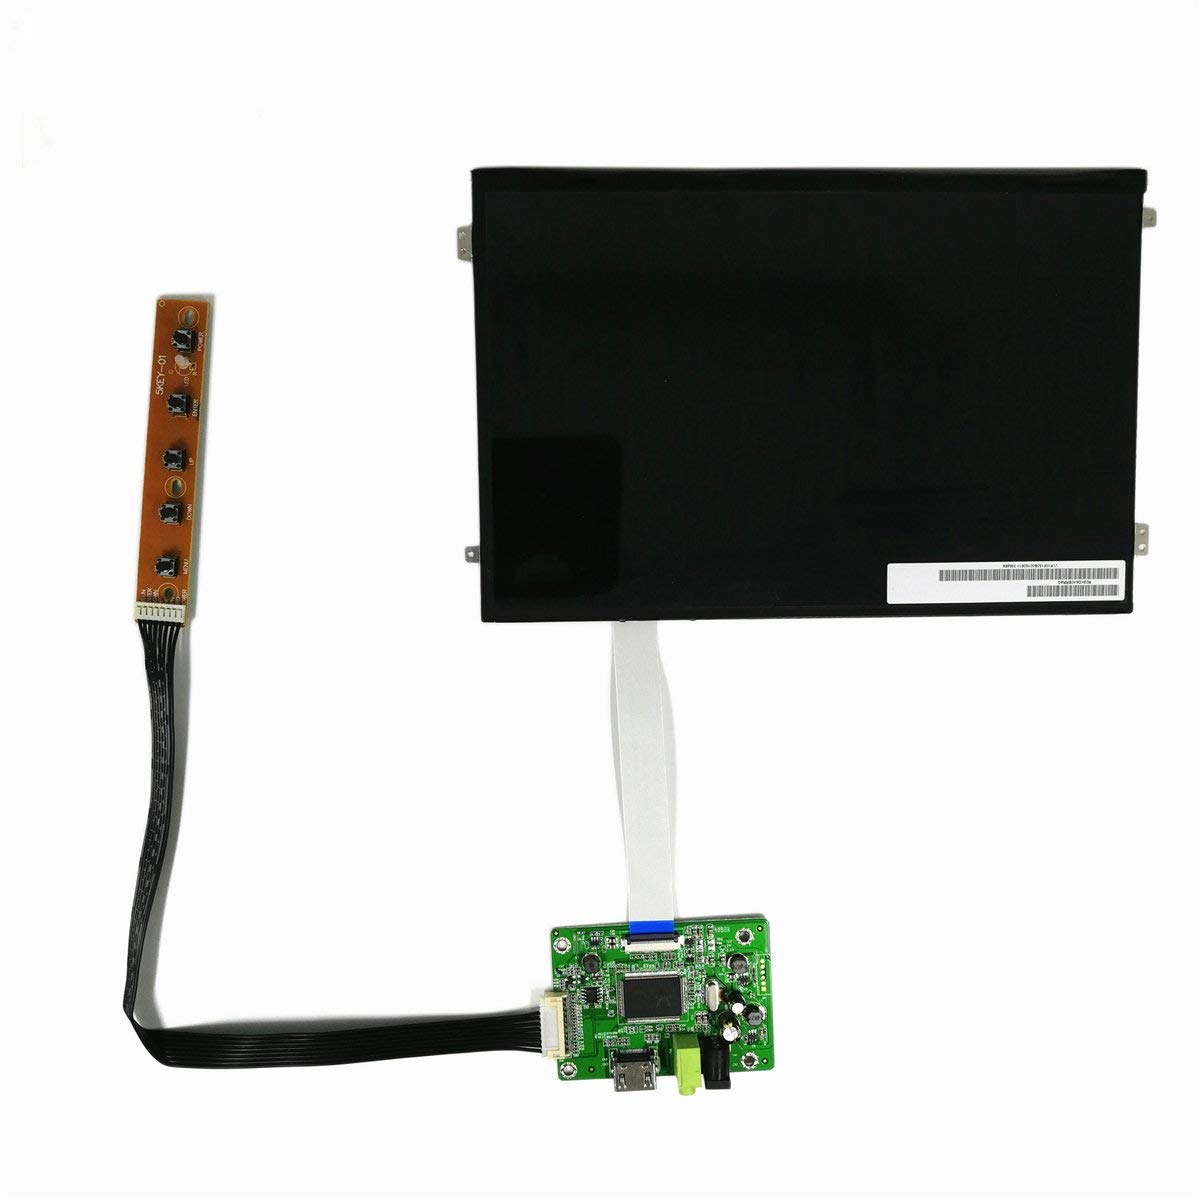 "Wearson 10.1"" inch LCD Monitor 1920x1200 IPS LCD Screen Panel Display with HDMI Driver Board Kit for Raspberry Pi B+/2B/3B etc"